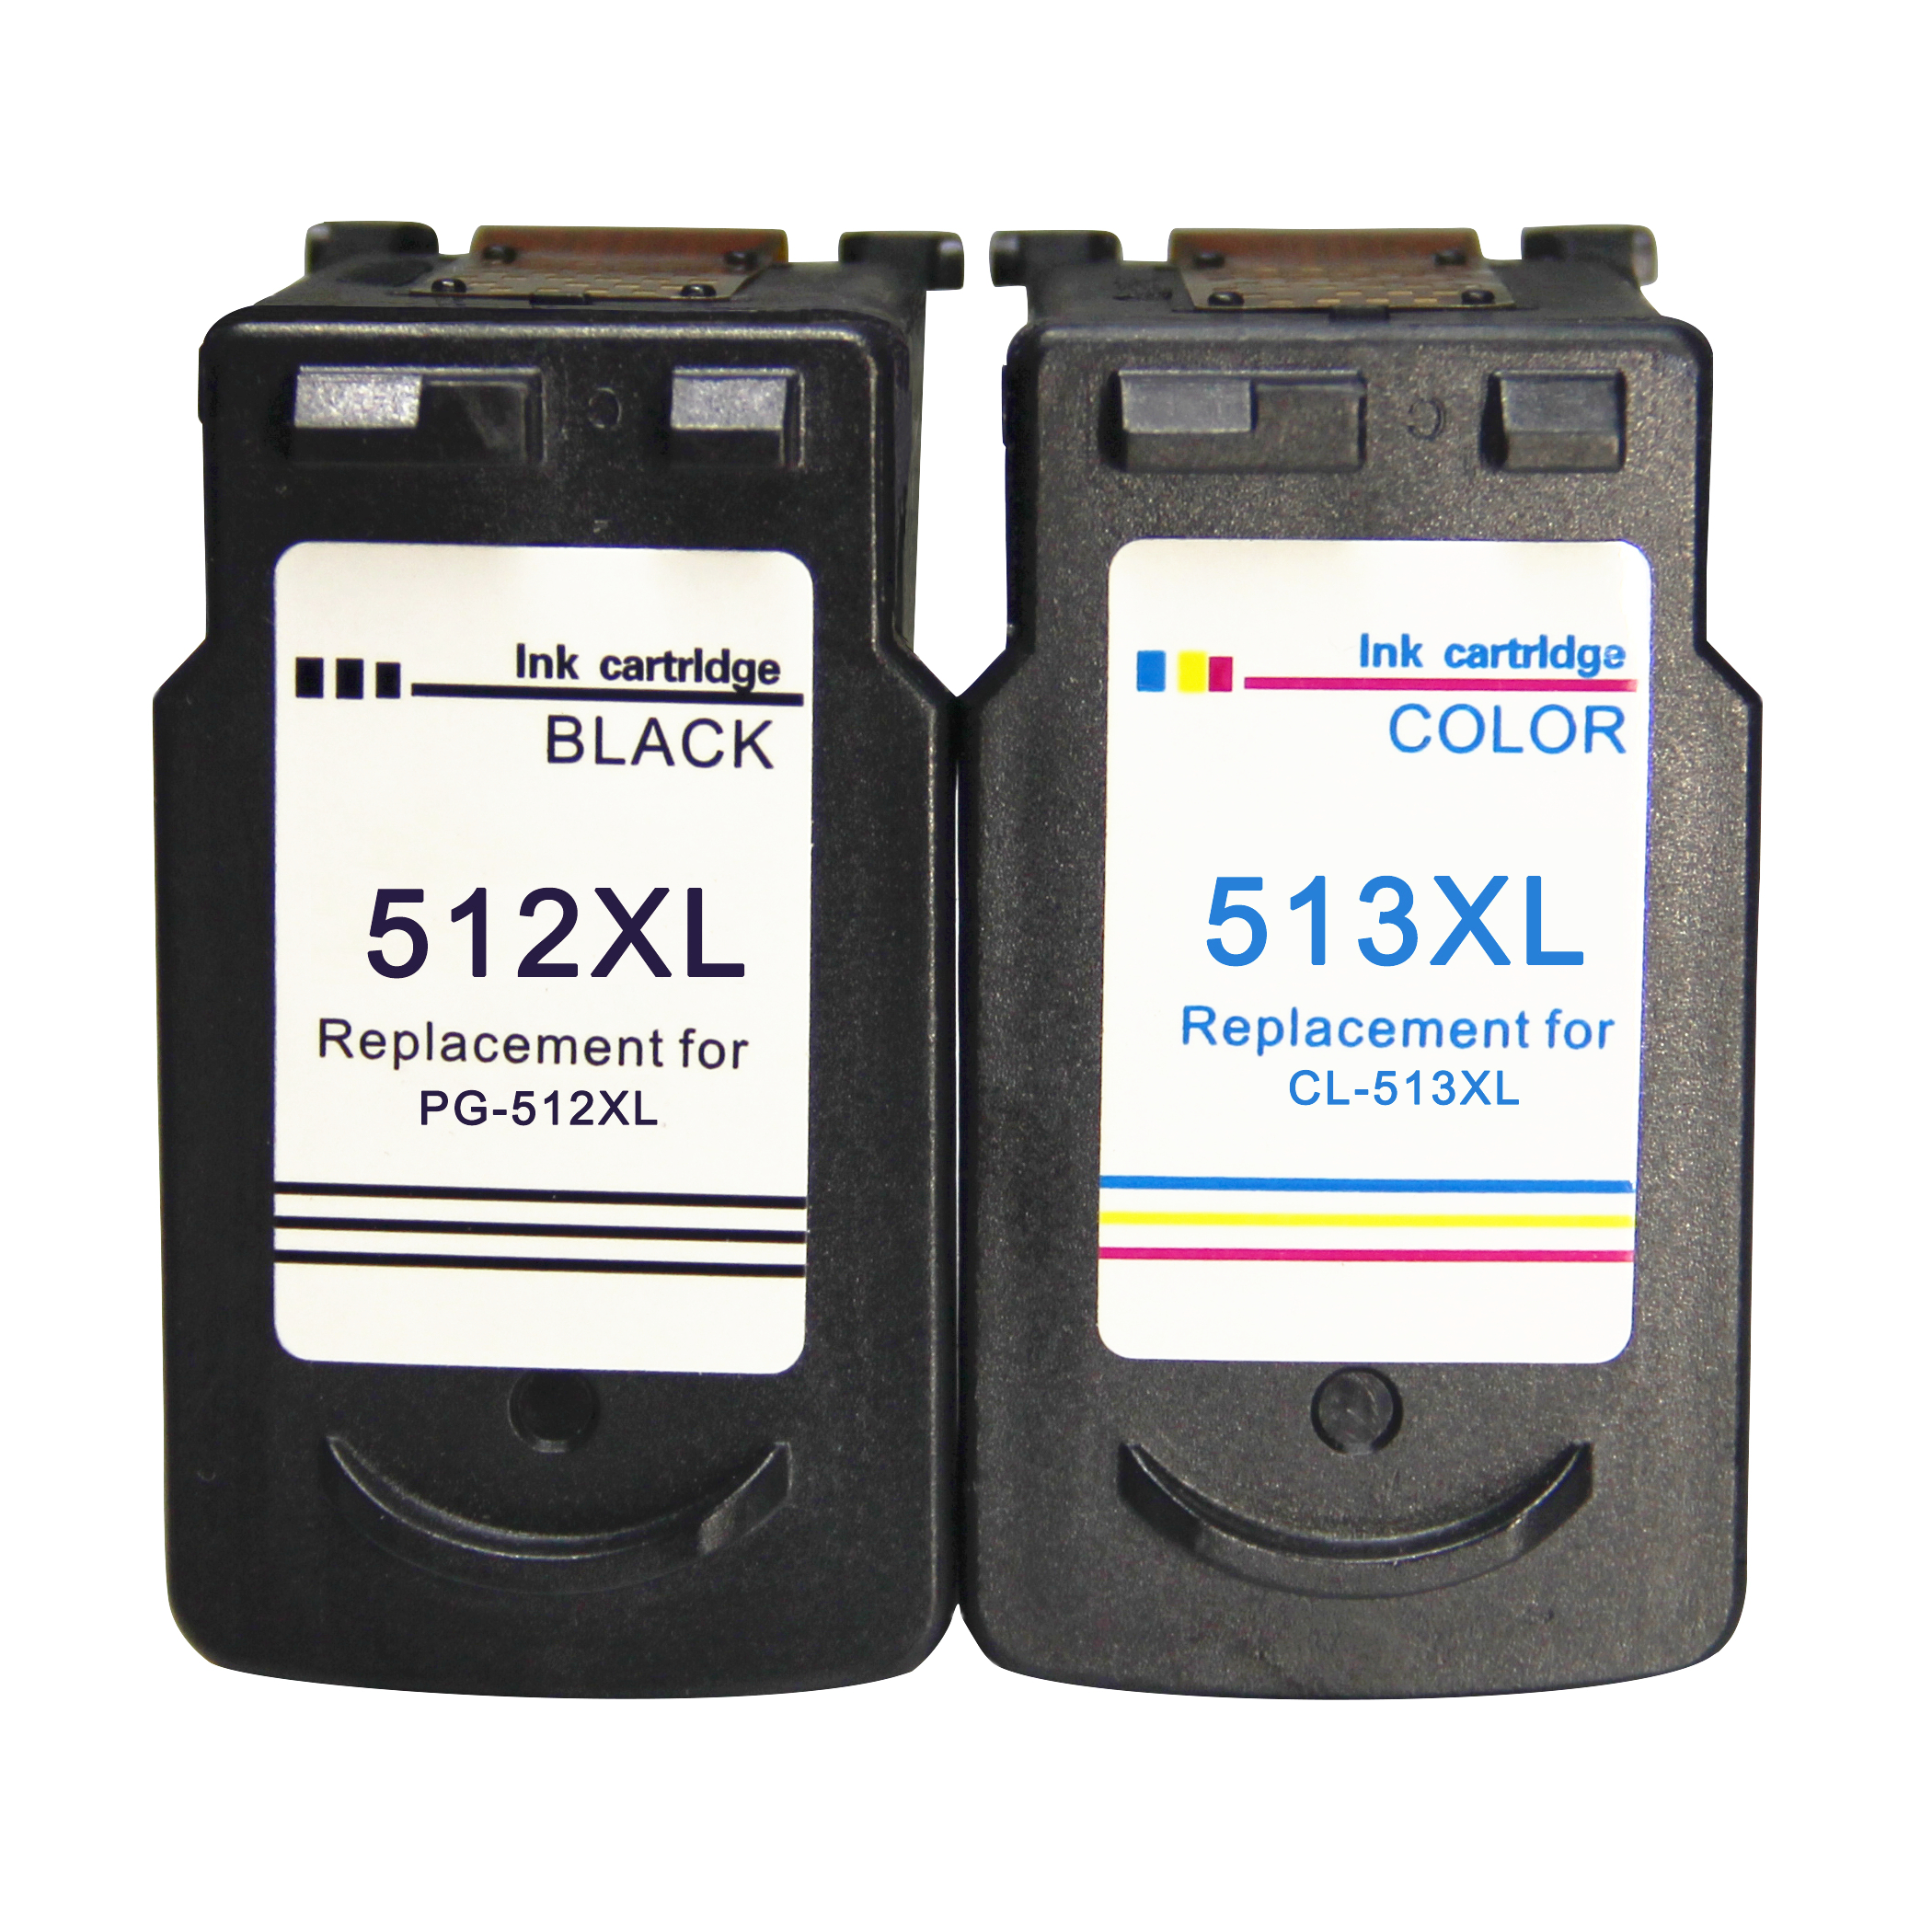 PG 512 pg512 CL 513 ink cartridge replacement for Canon PG-512 CL-513 for Canon MP240 MP250 MP270 MP230 MP480 MX350 IP2700 цена